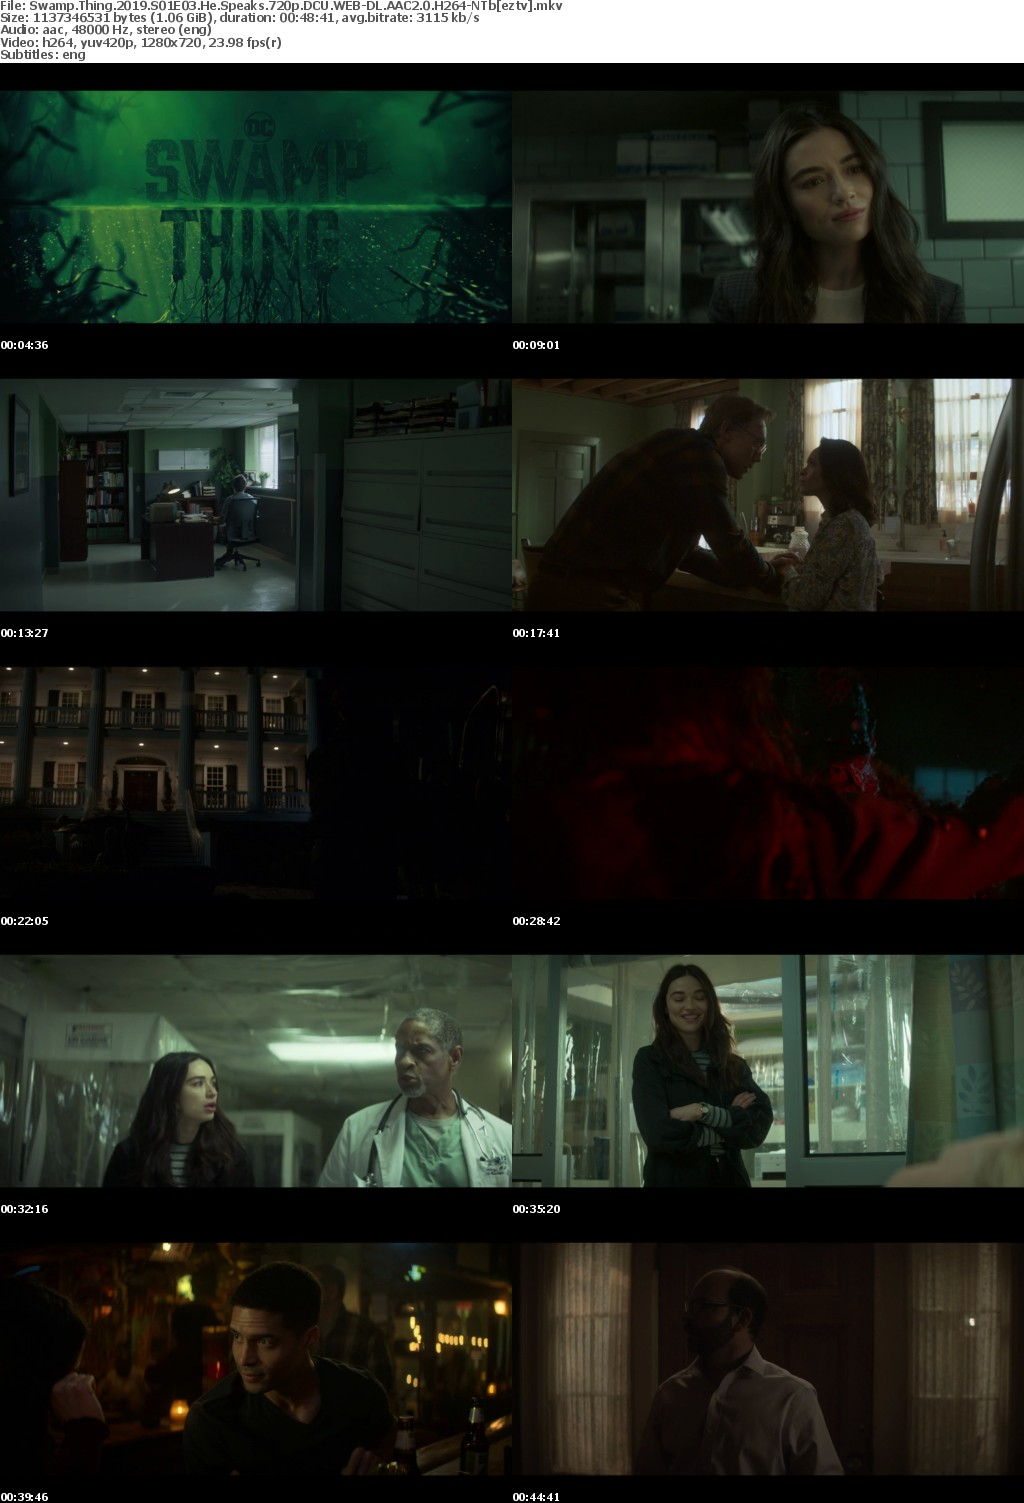 Swamp Thing 2019 S01E03 He Speaks 720p DCU WEB-DL AAC2 0 H264-NTb